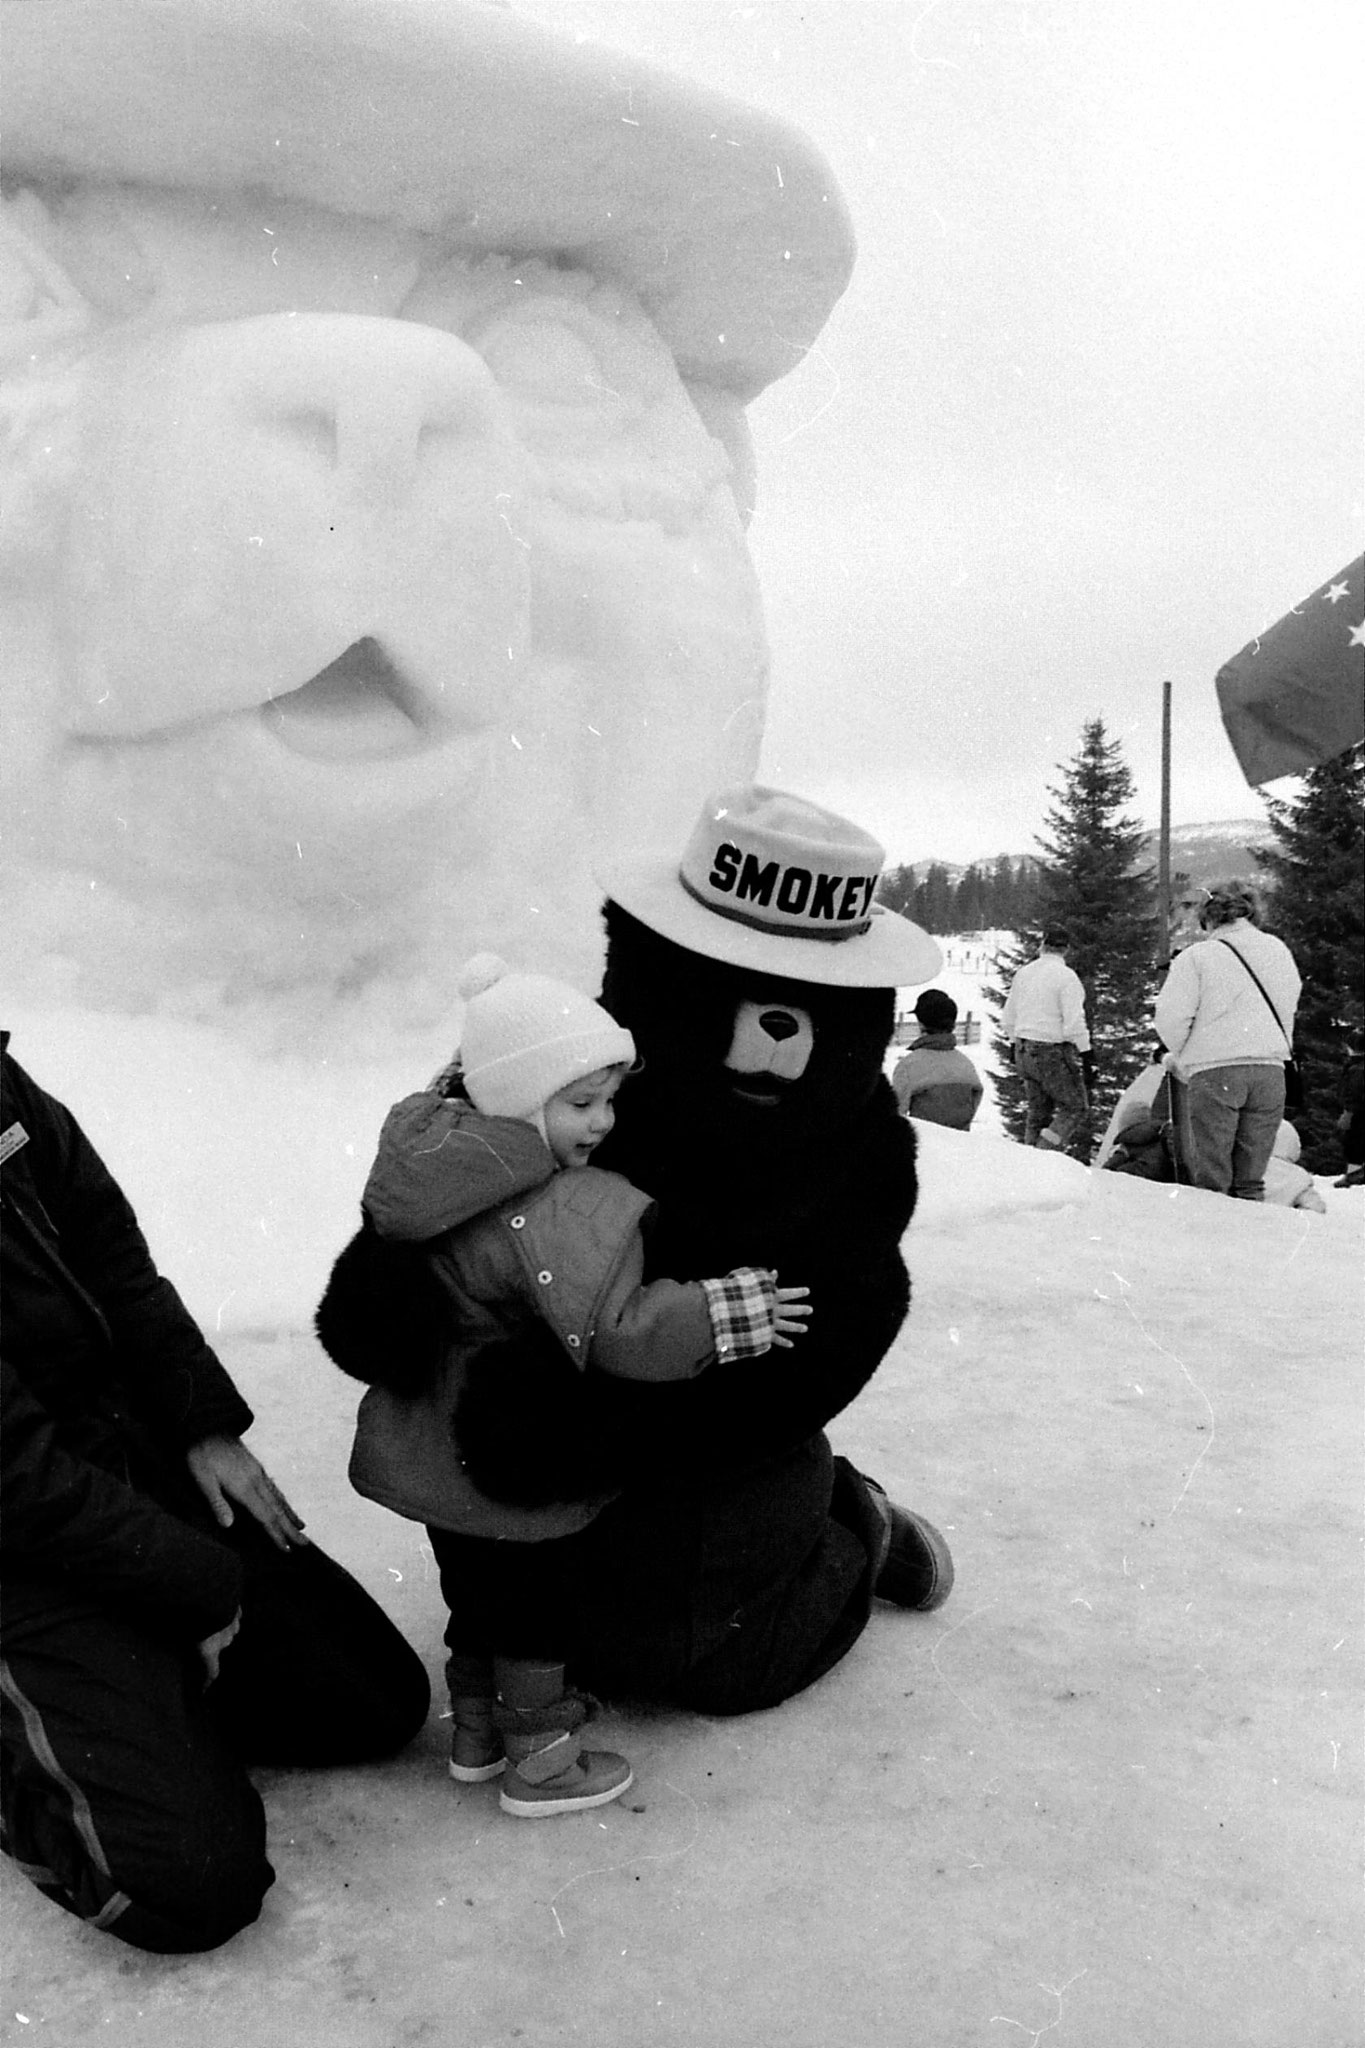 2/2/1991: 23: McCall Ice Festival